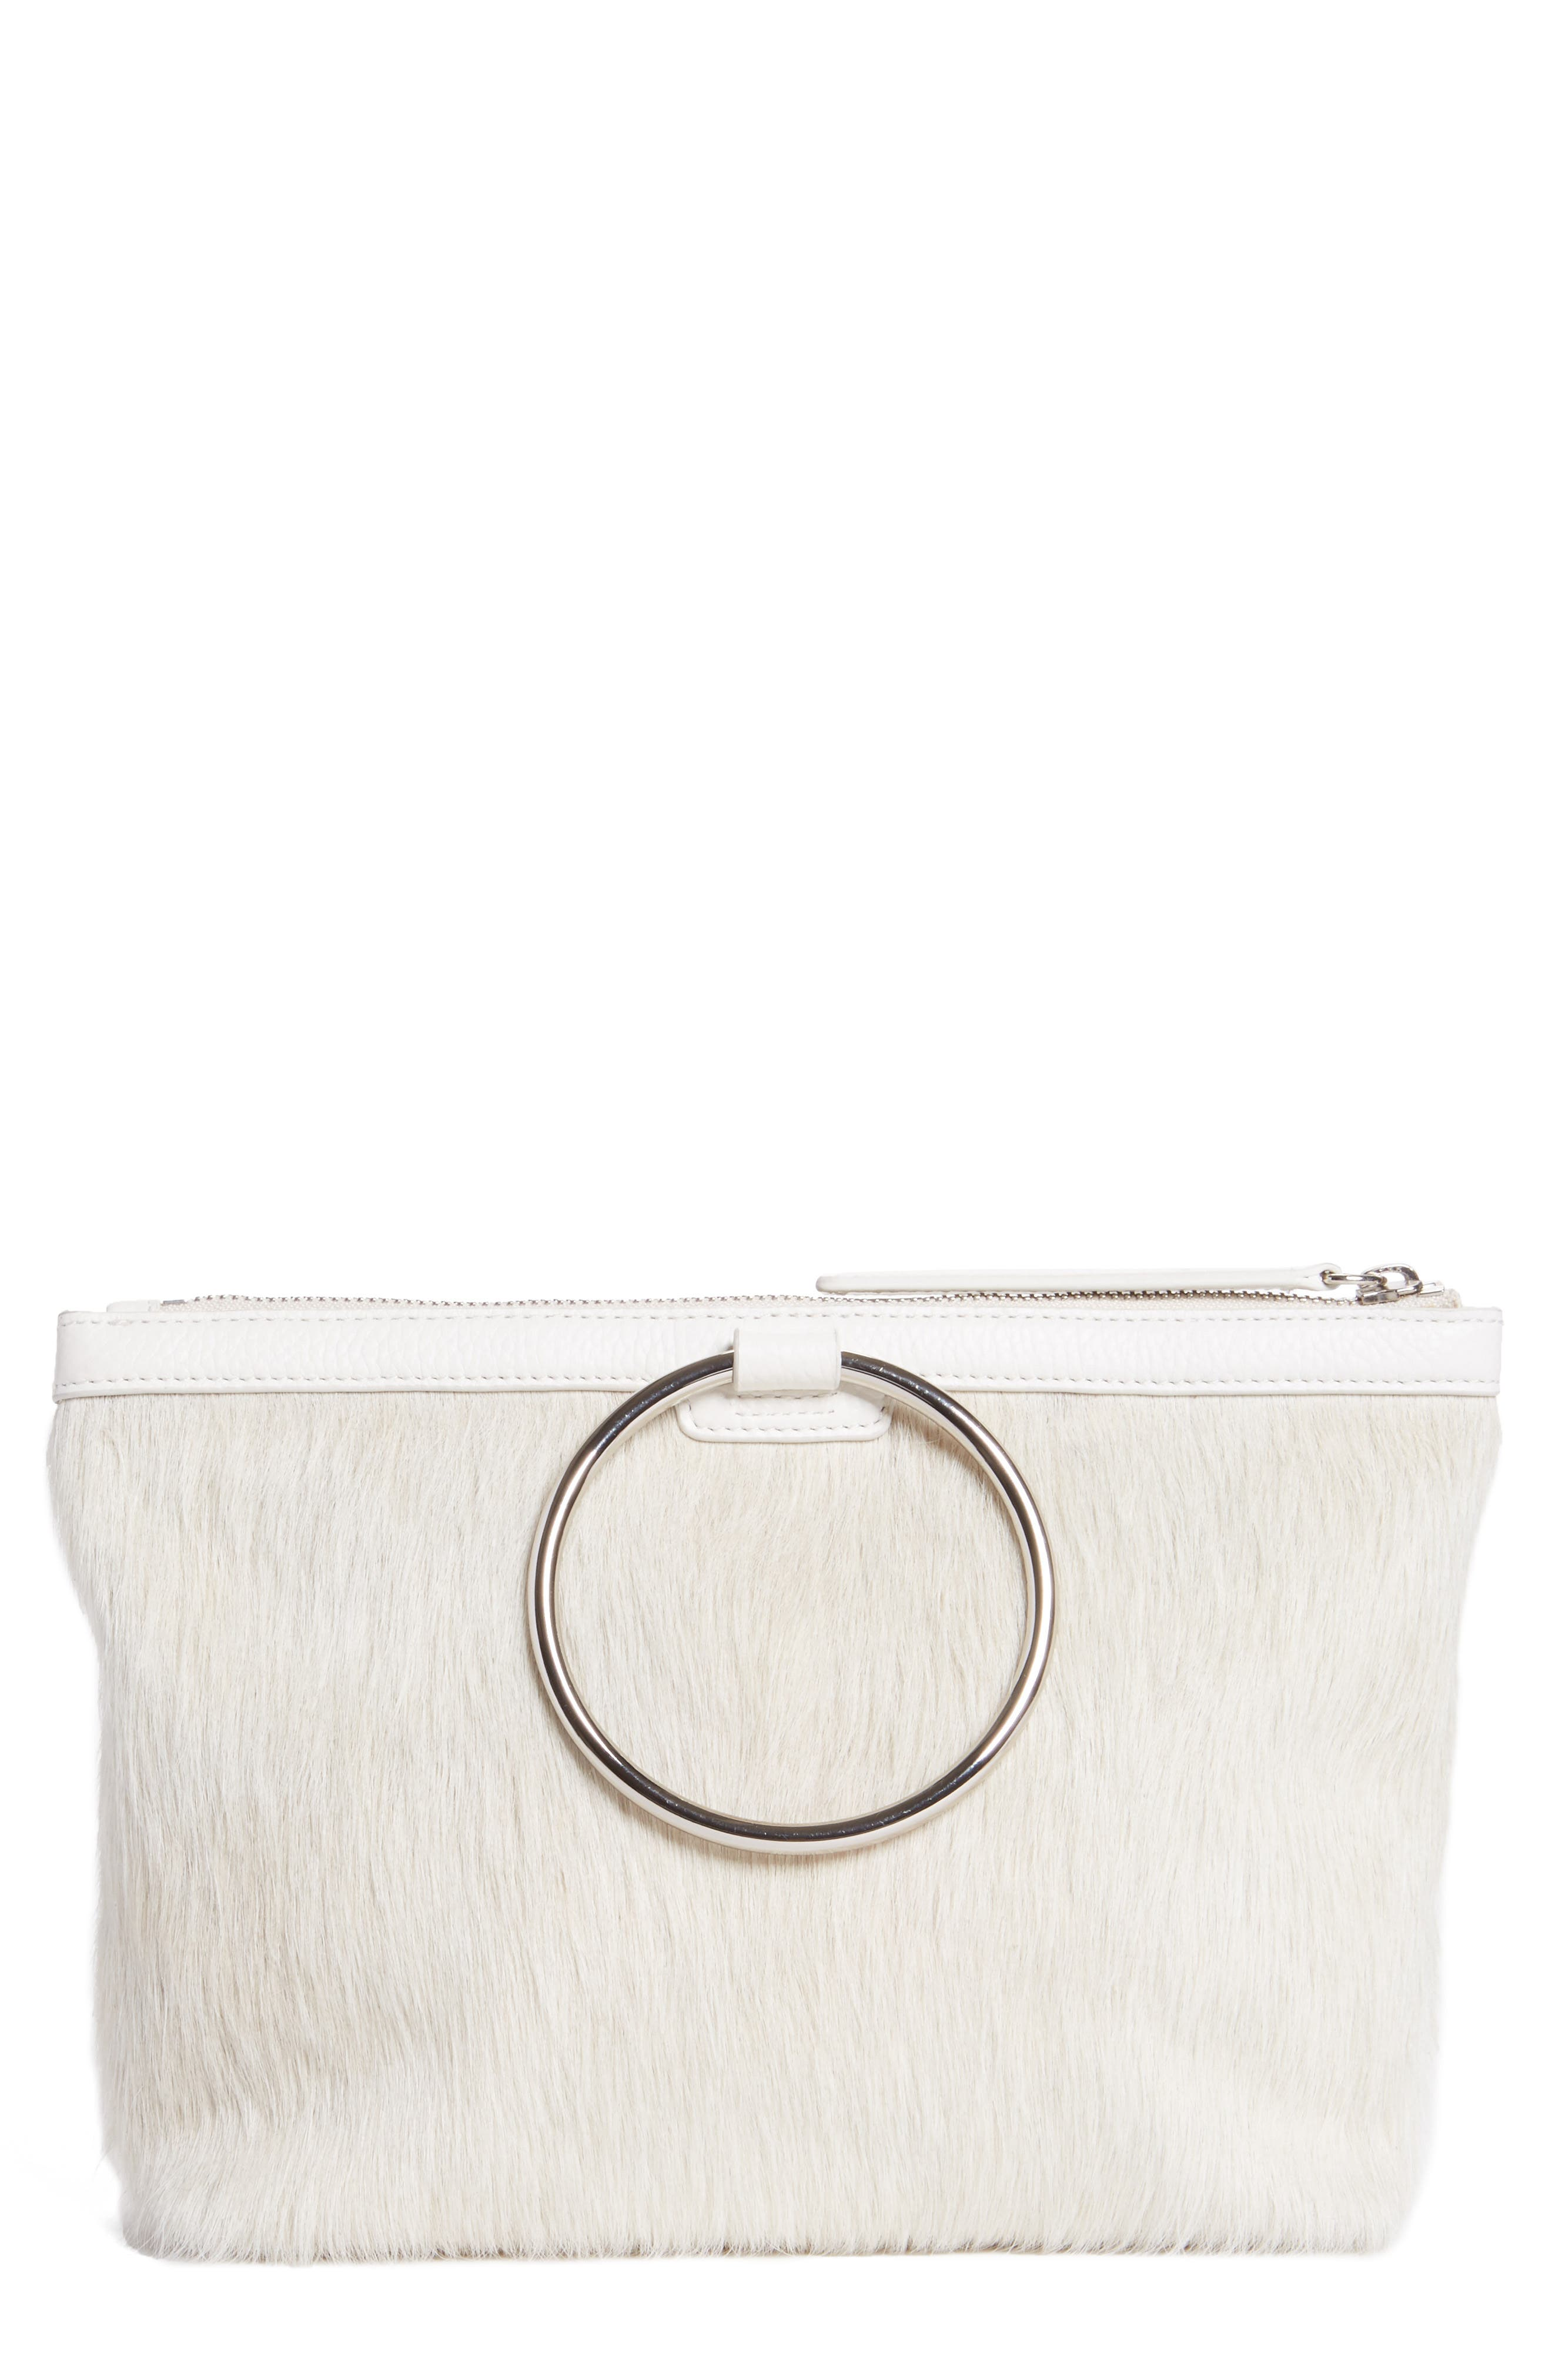 Genuine Calf Hair Ring Clutch,                         Main,                         color, Off White